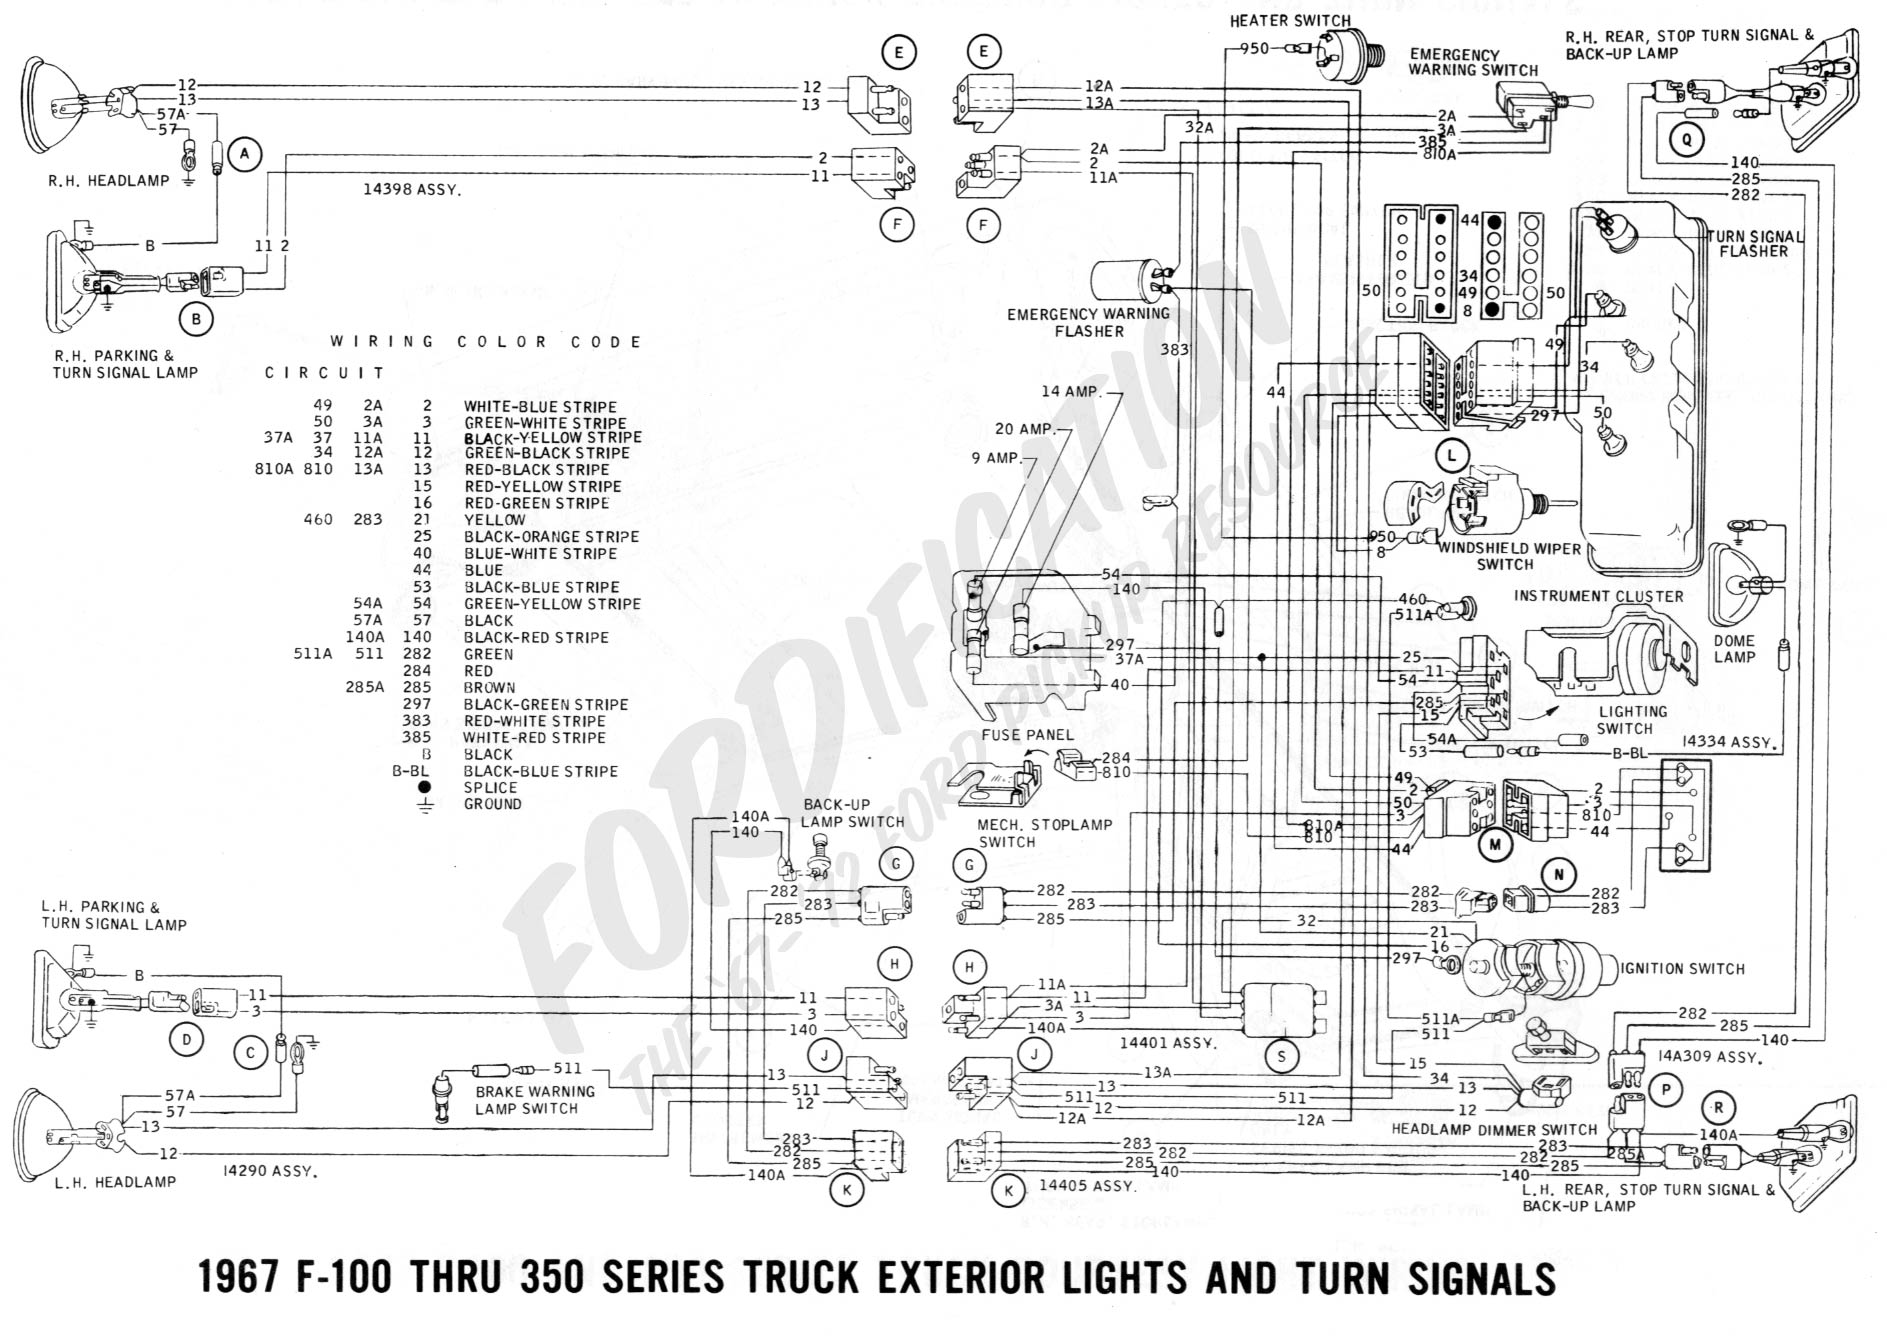 isb 300 pcm wiring diagram wiring diagram 1998 Ford Contour PCM Wiring Harness Diagram isb 300 pcm wiring diagram wiring diagramisb 300 pcm wiring diagram best wiring libraryisb 300 pcm